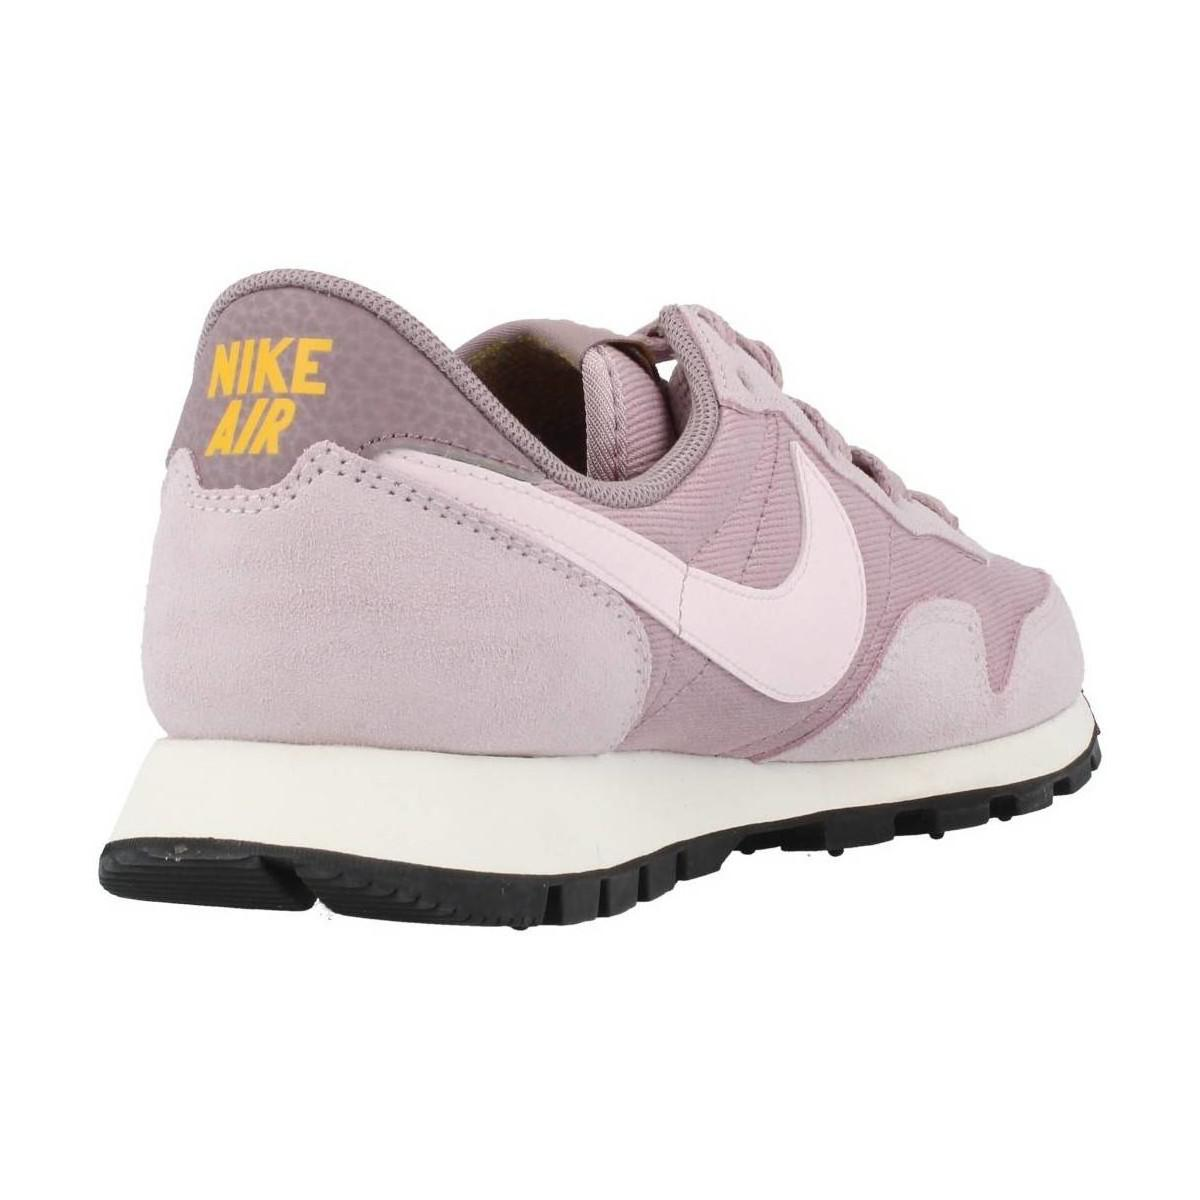 Wmns `83Low Pegasus top Air Sneakers bIf7gy6vY